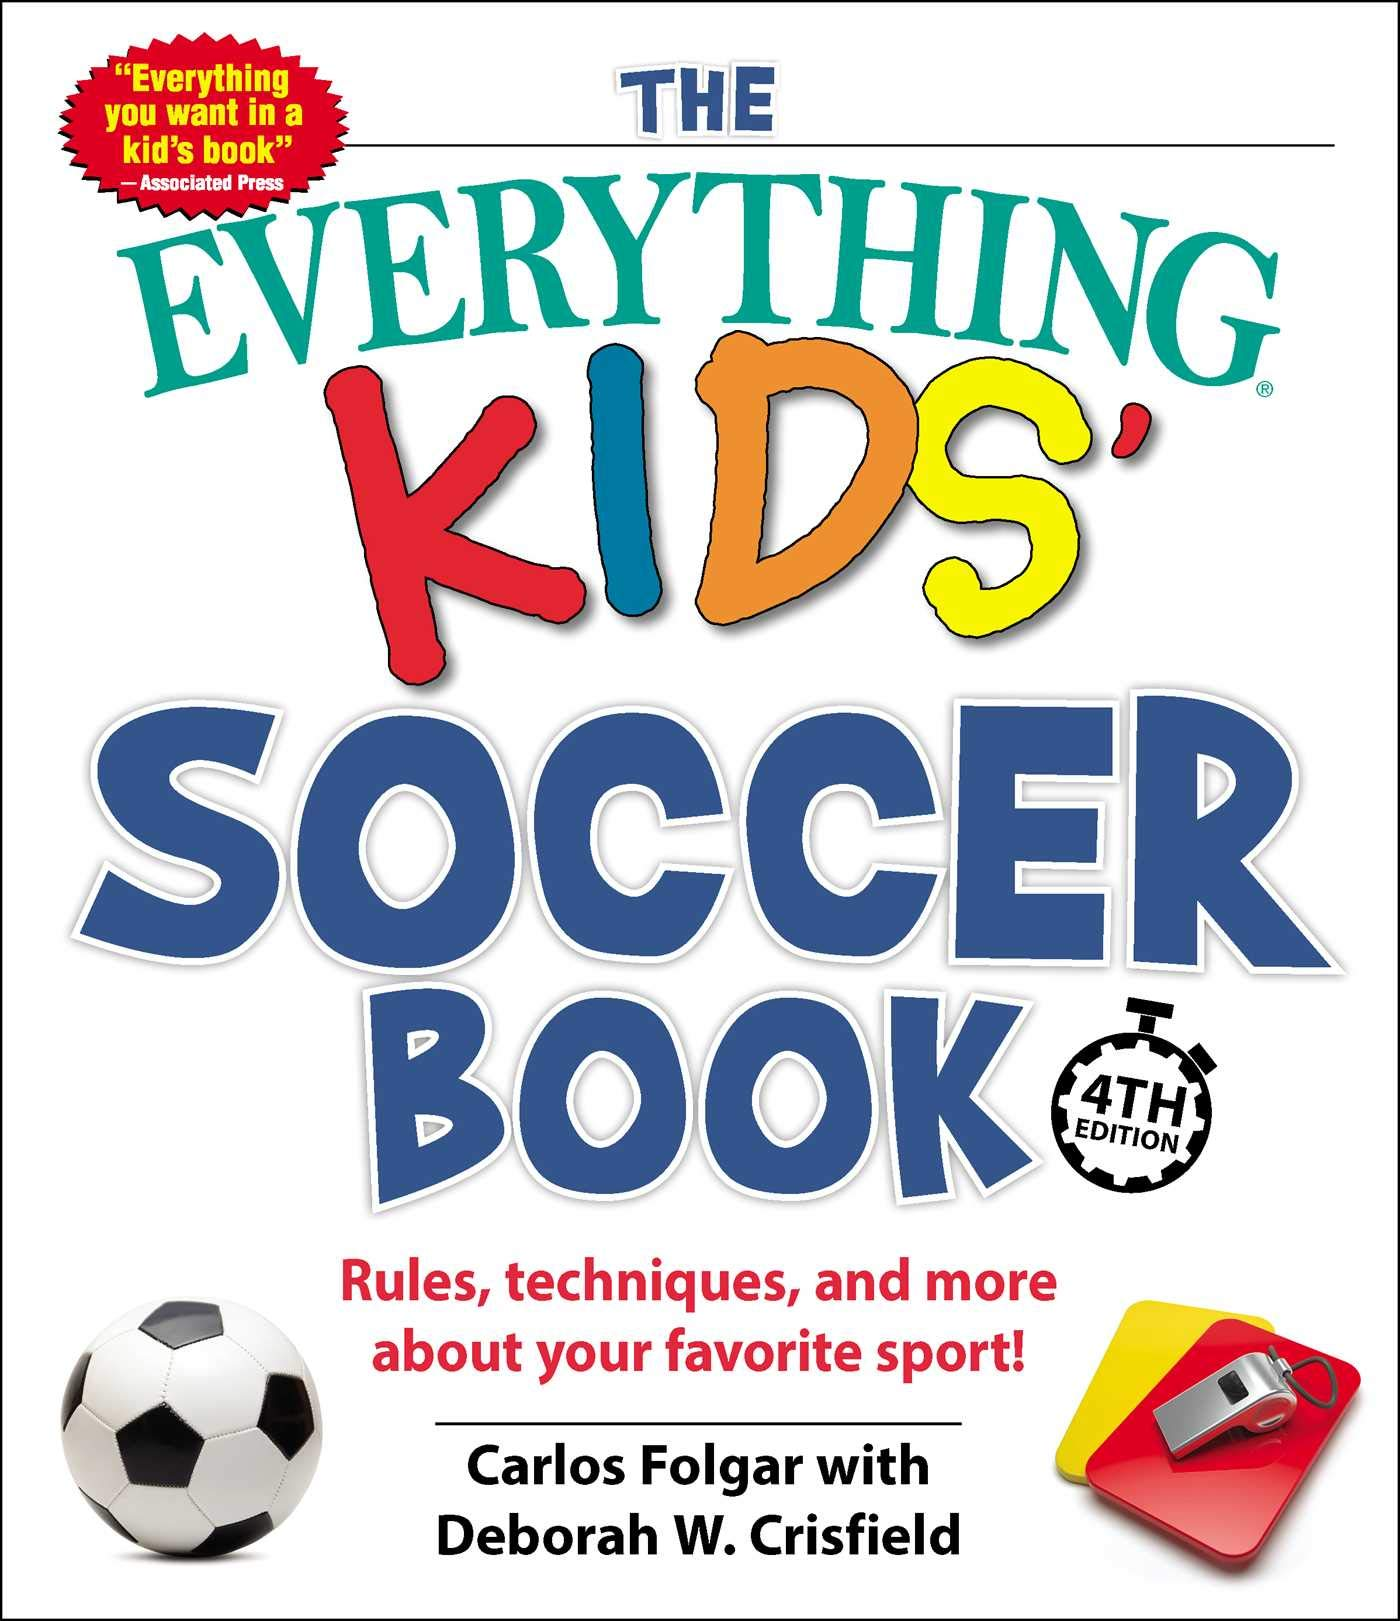 Techniques The Everything Kids Soccer Book 4th Edition: Rules and More about Your Favorite Sport!